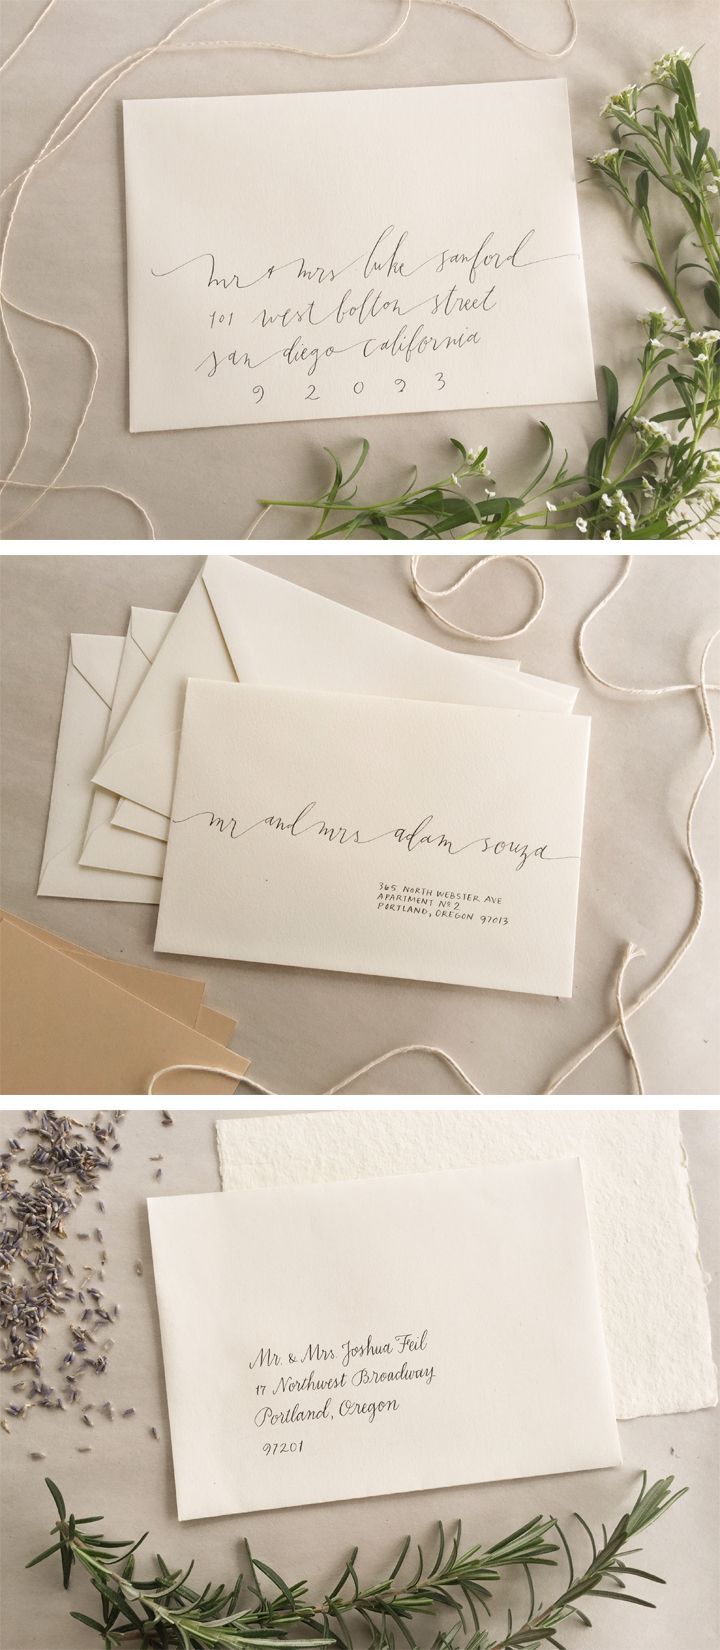 PALOMINO contemporary calligraphy envelope addressing PALOMINO